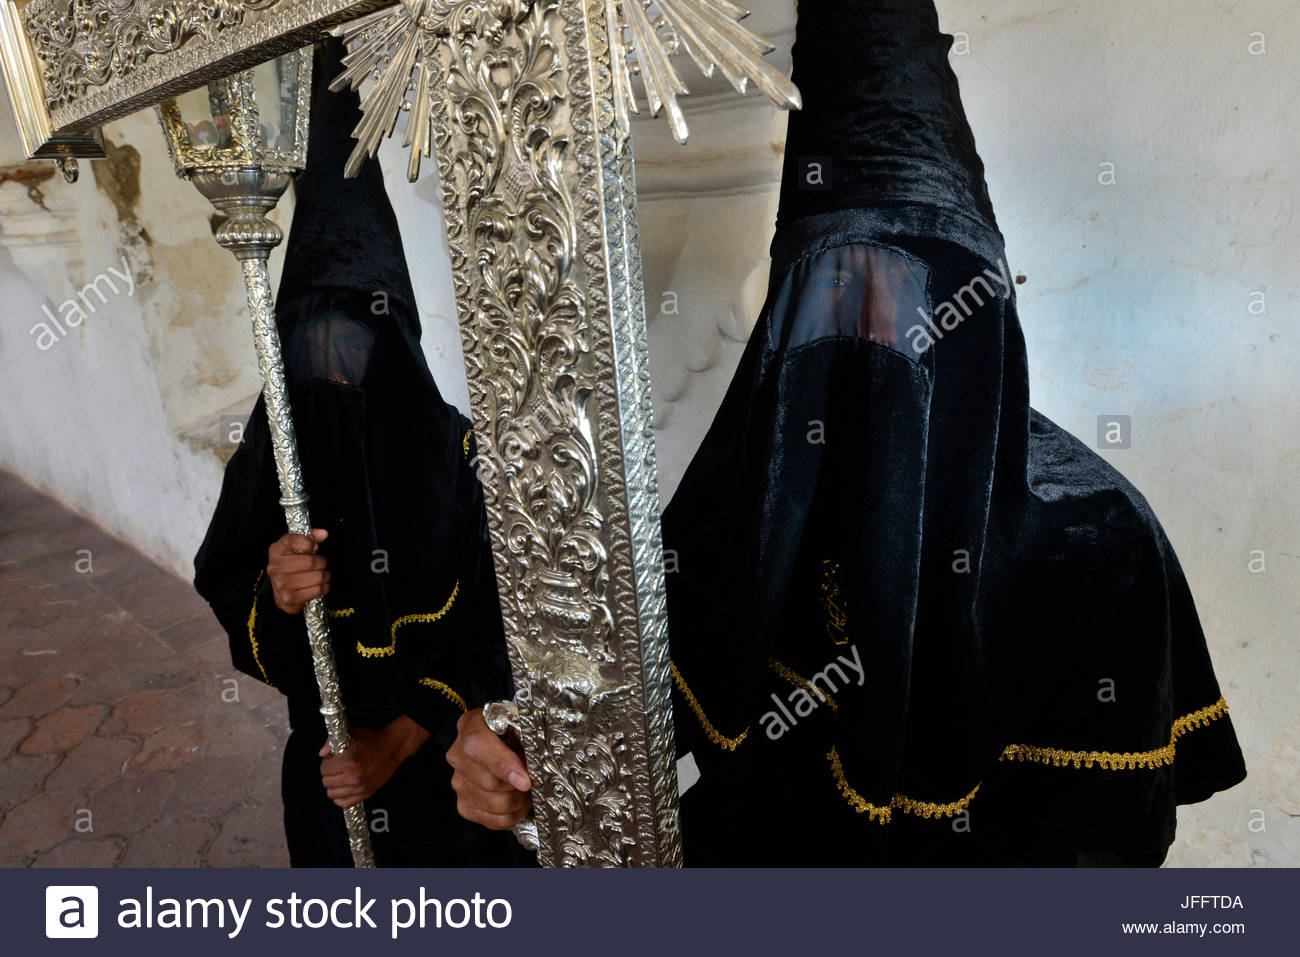 Penitents carrying a silver cross. - Stock Image